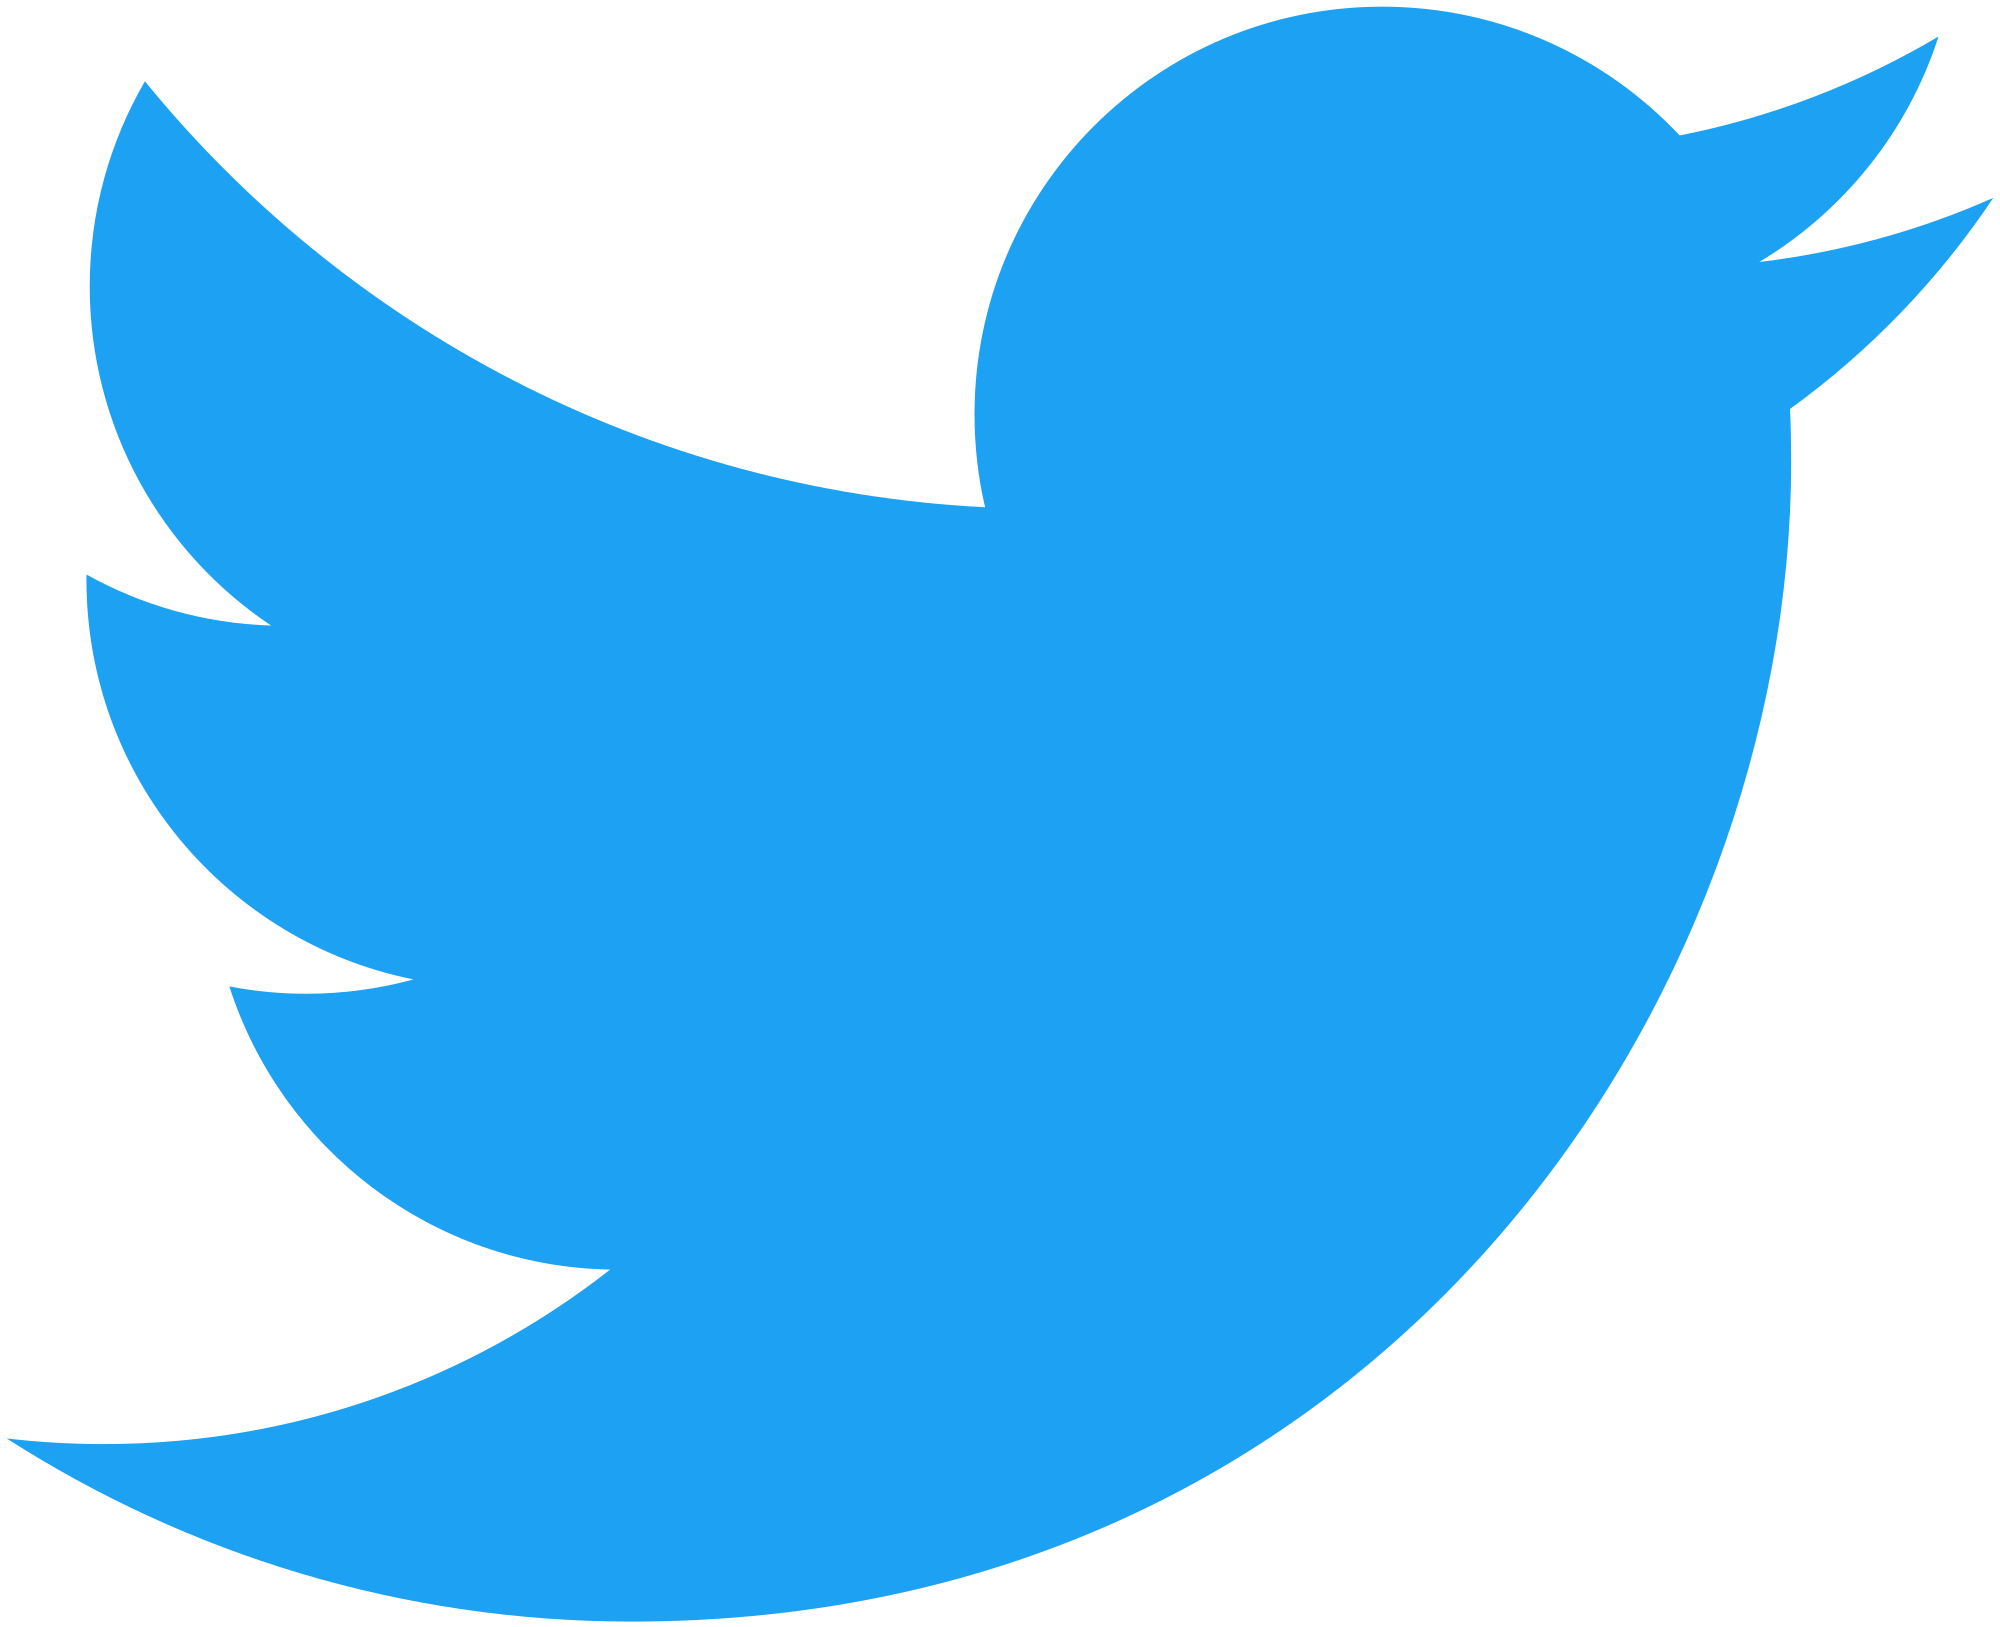 Twitter bird logo 2012svg